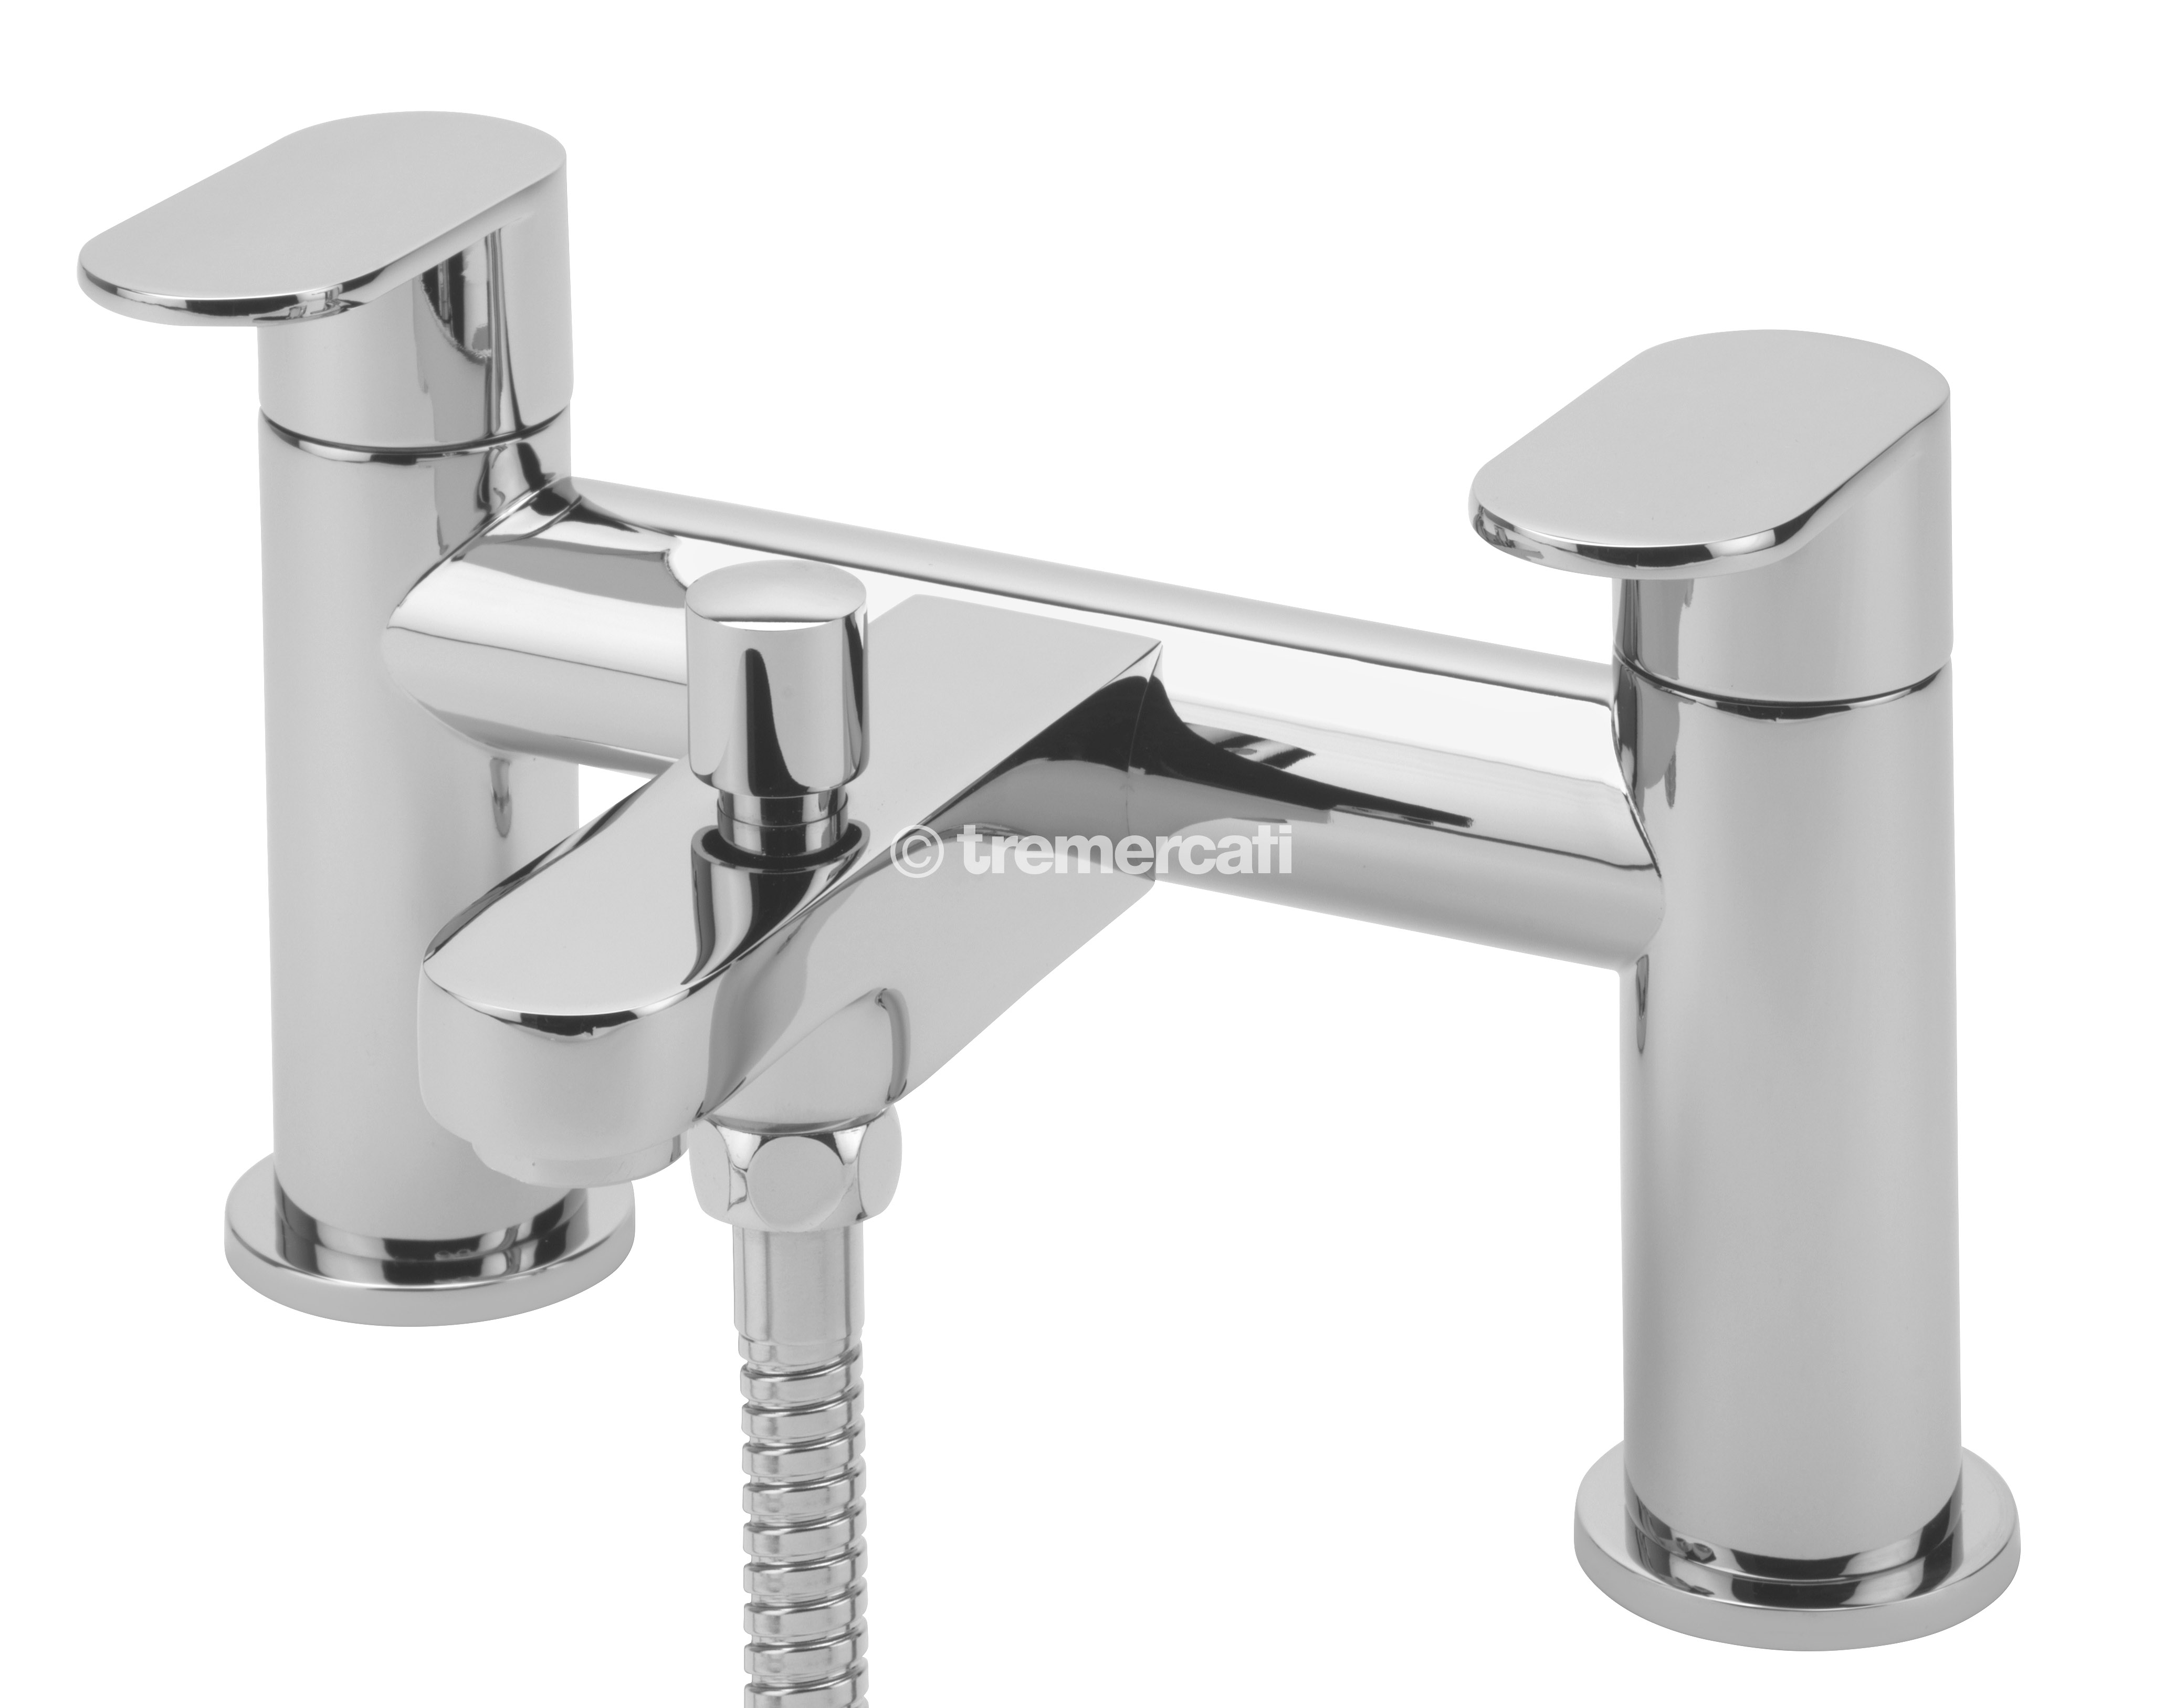 TRE MERCATI GECO PILLAR BATH SHOWER MIXER COMPLETE WITH KIT CHROME PLATED